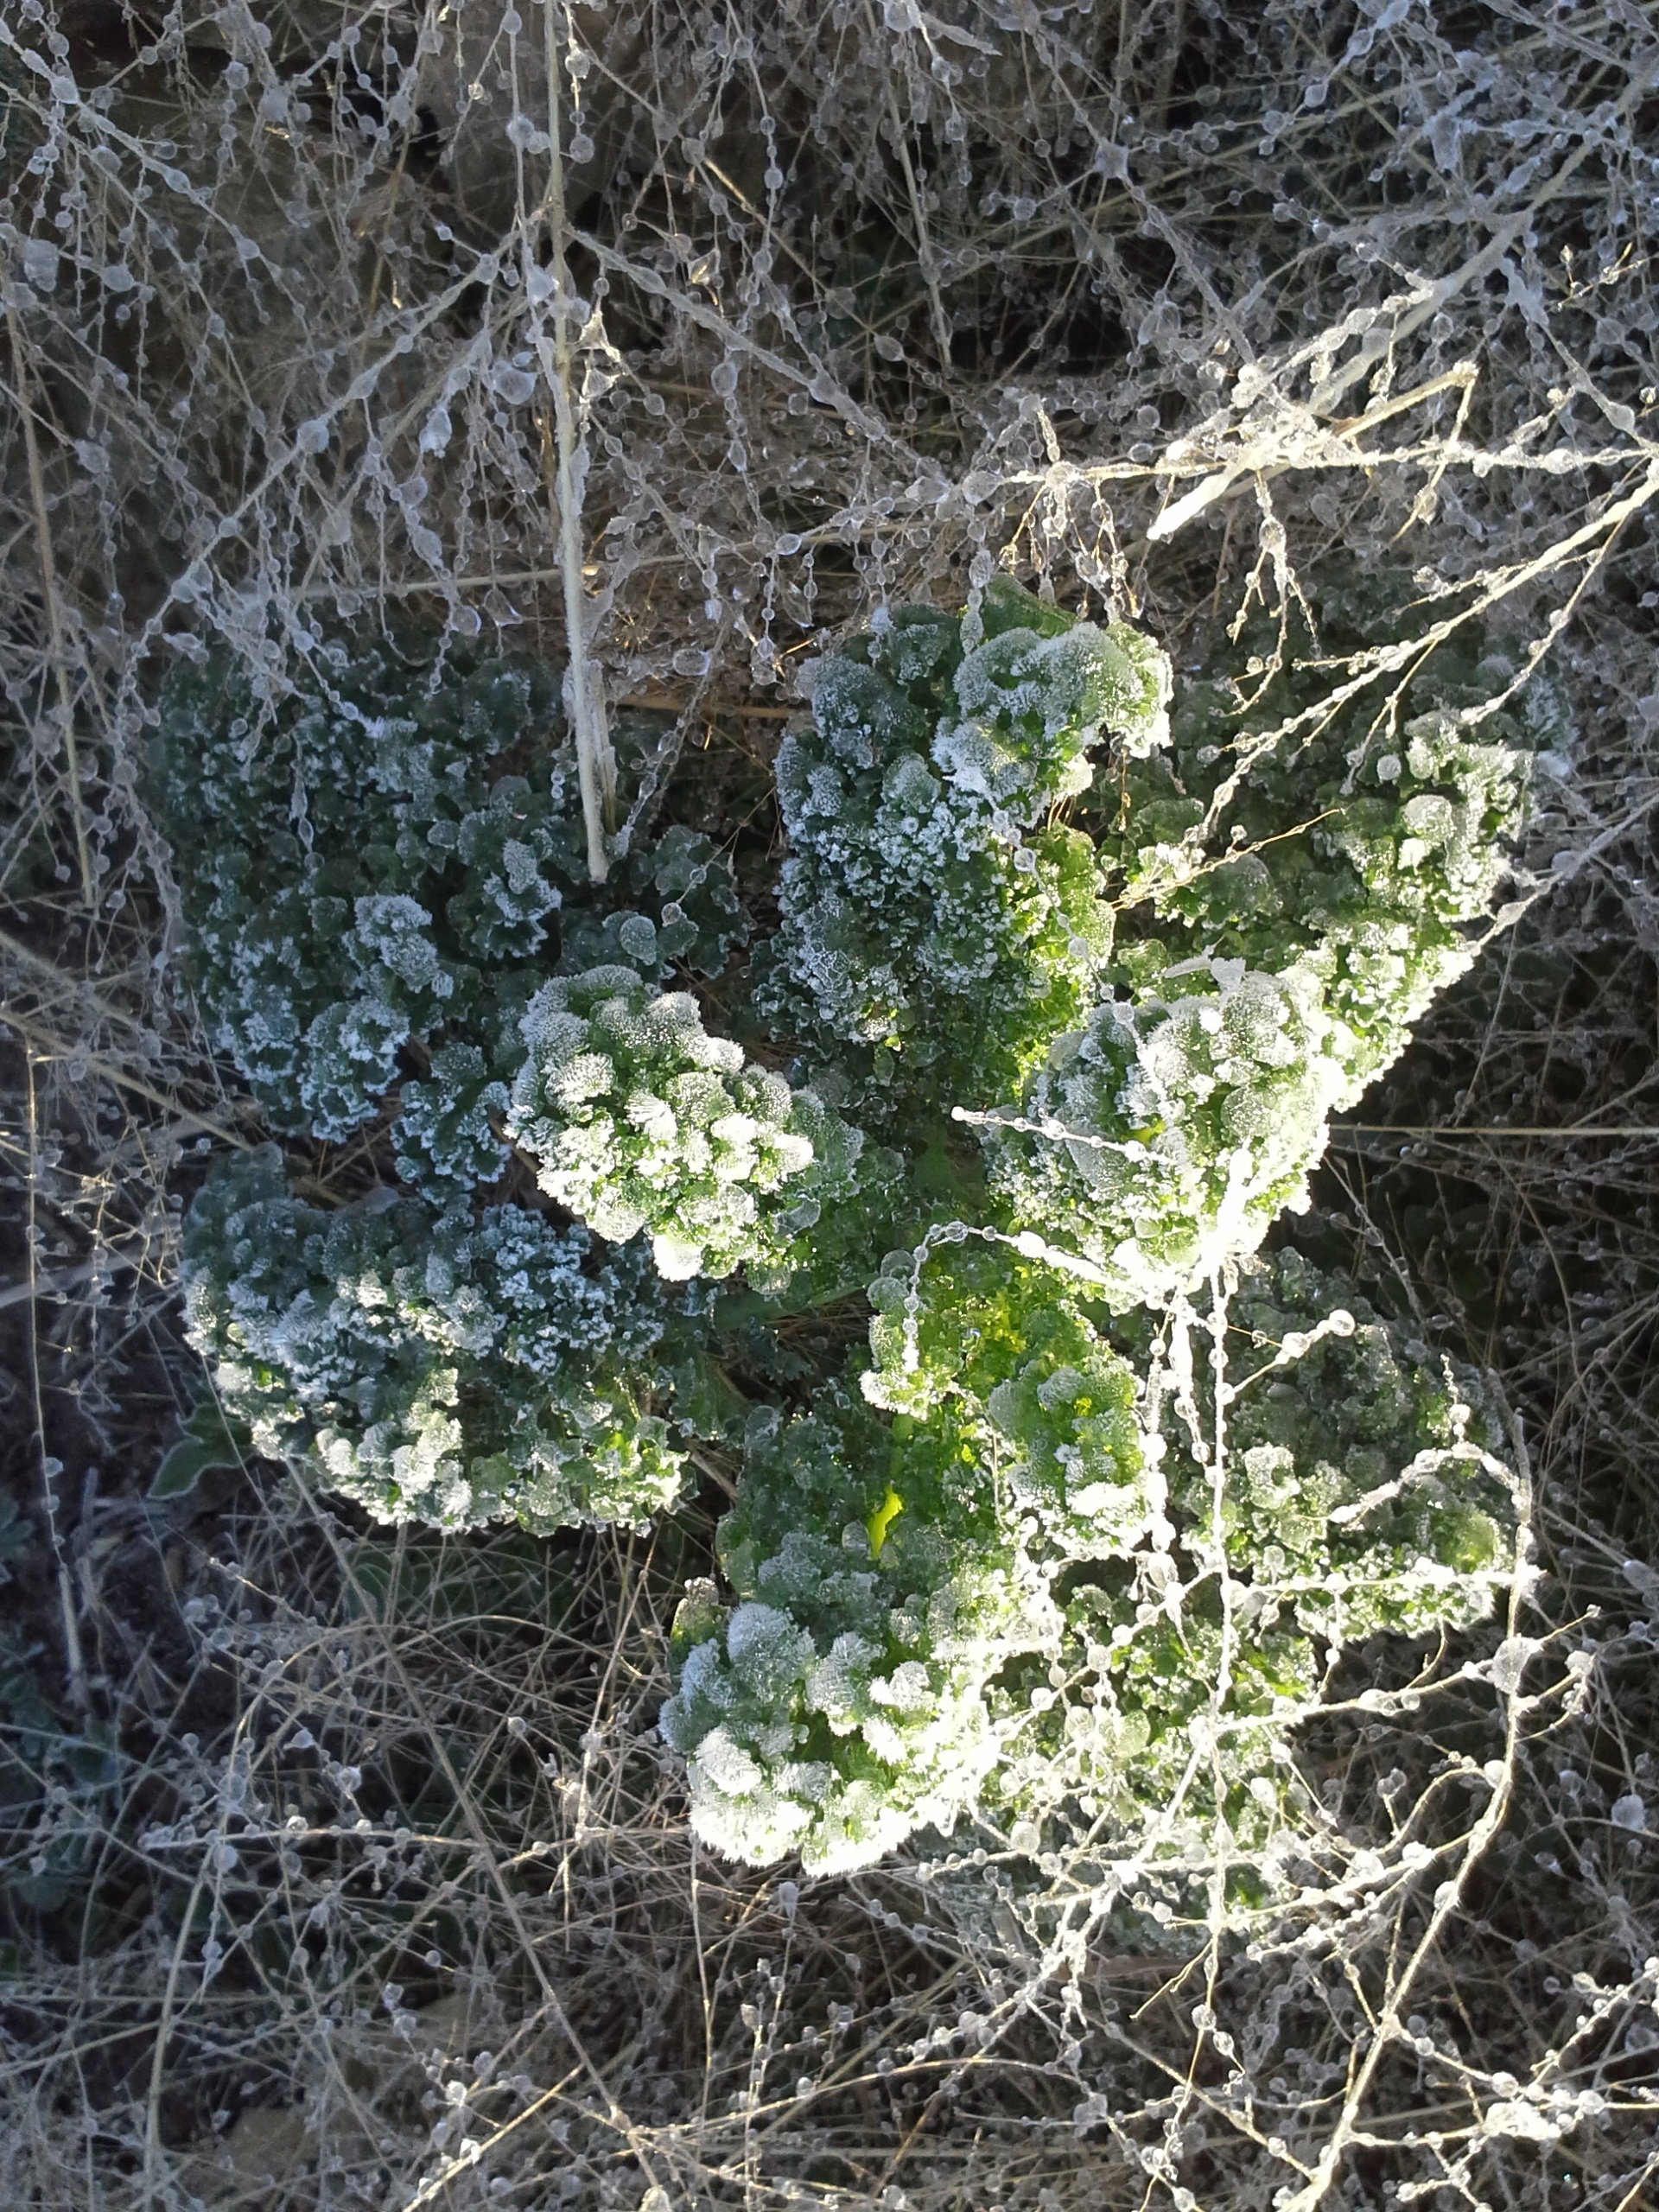 Tumbleweeds and curly kale locked in frozen embrace.